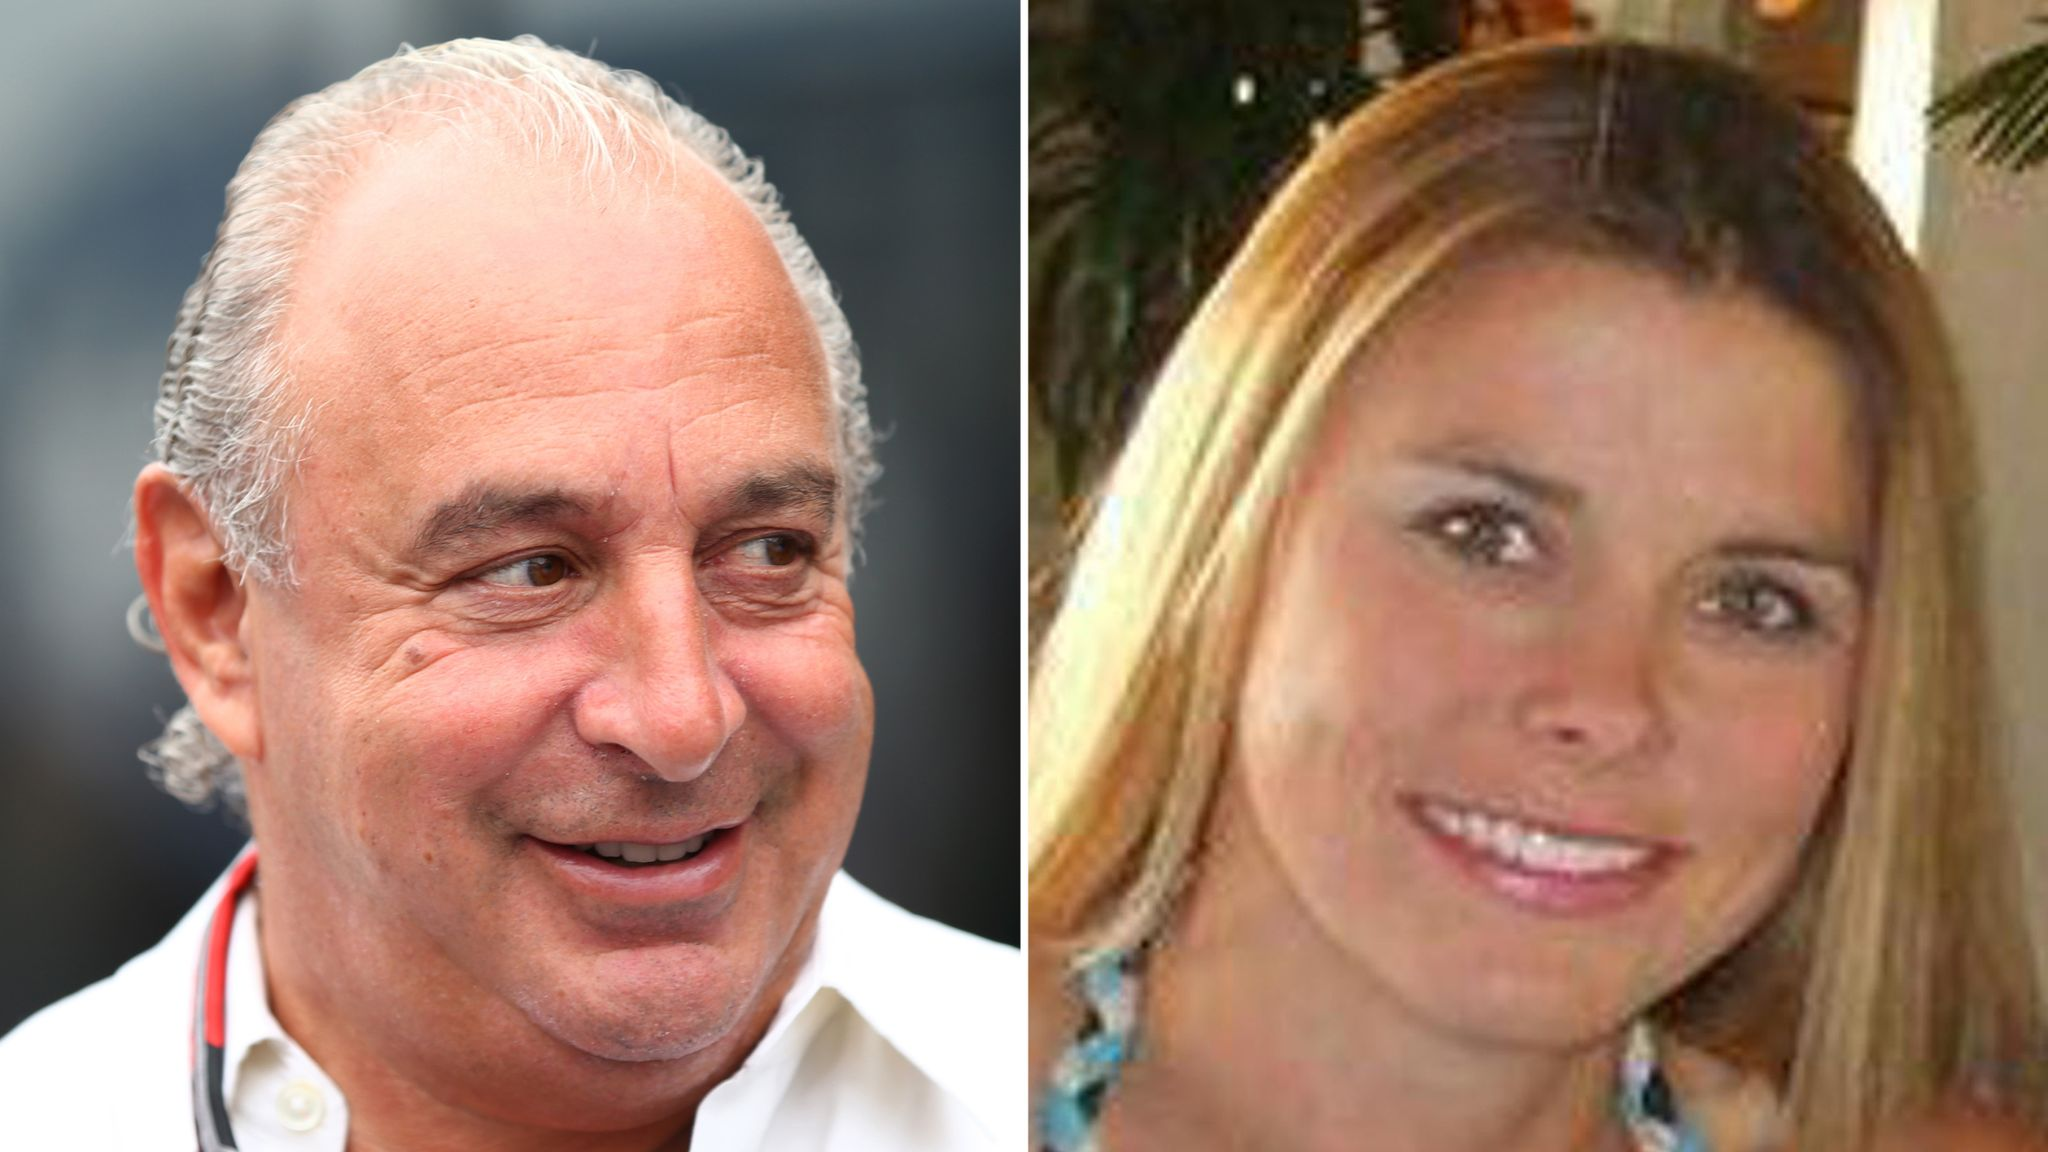 Sir Philip Green sex assault charges are 'dismissed' - Arcadia